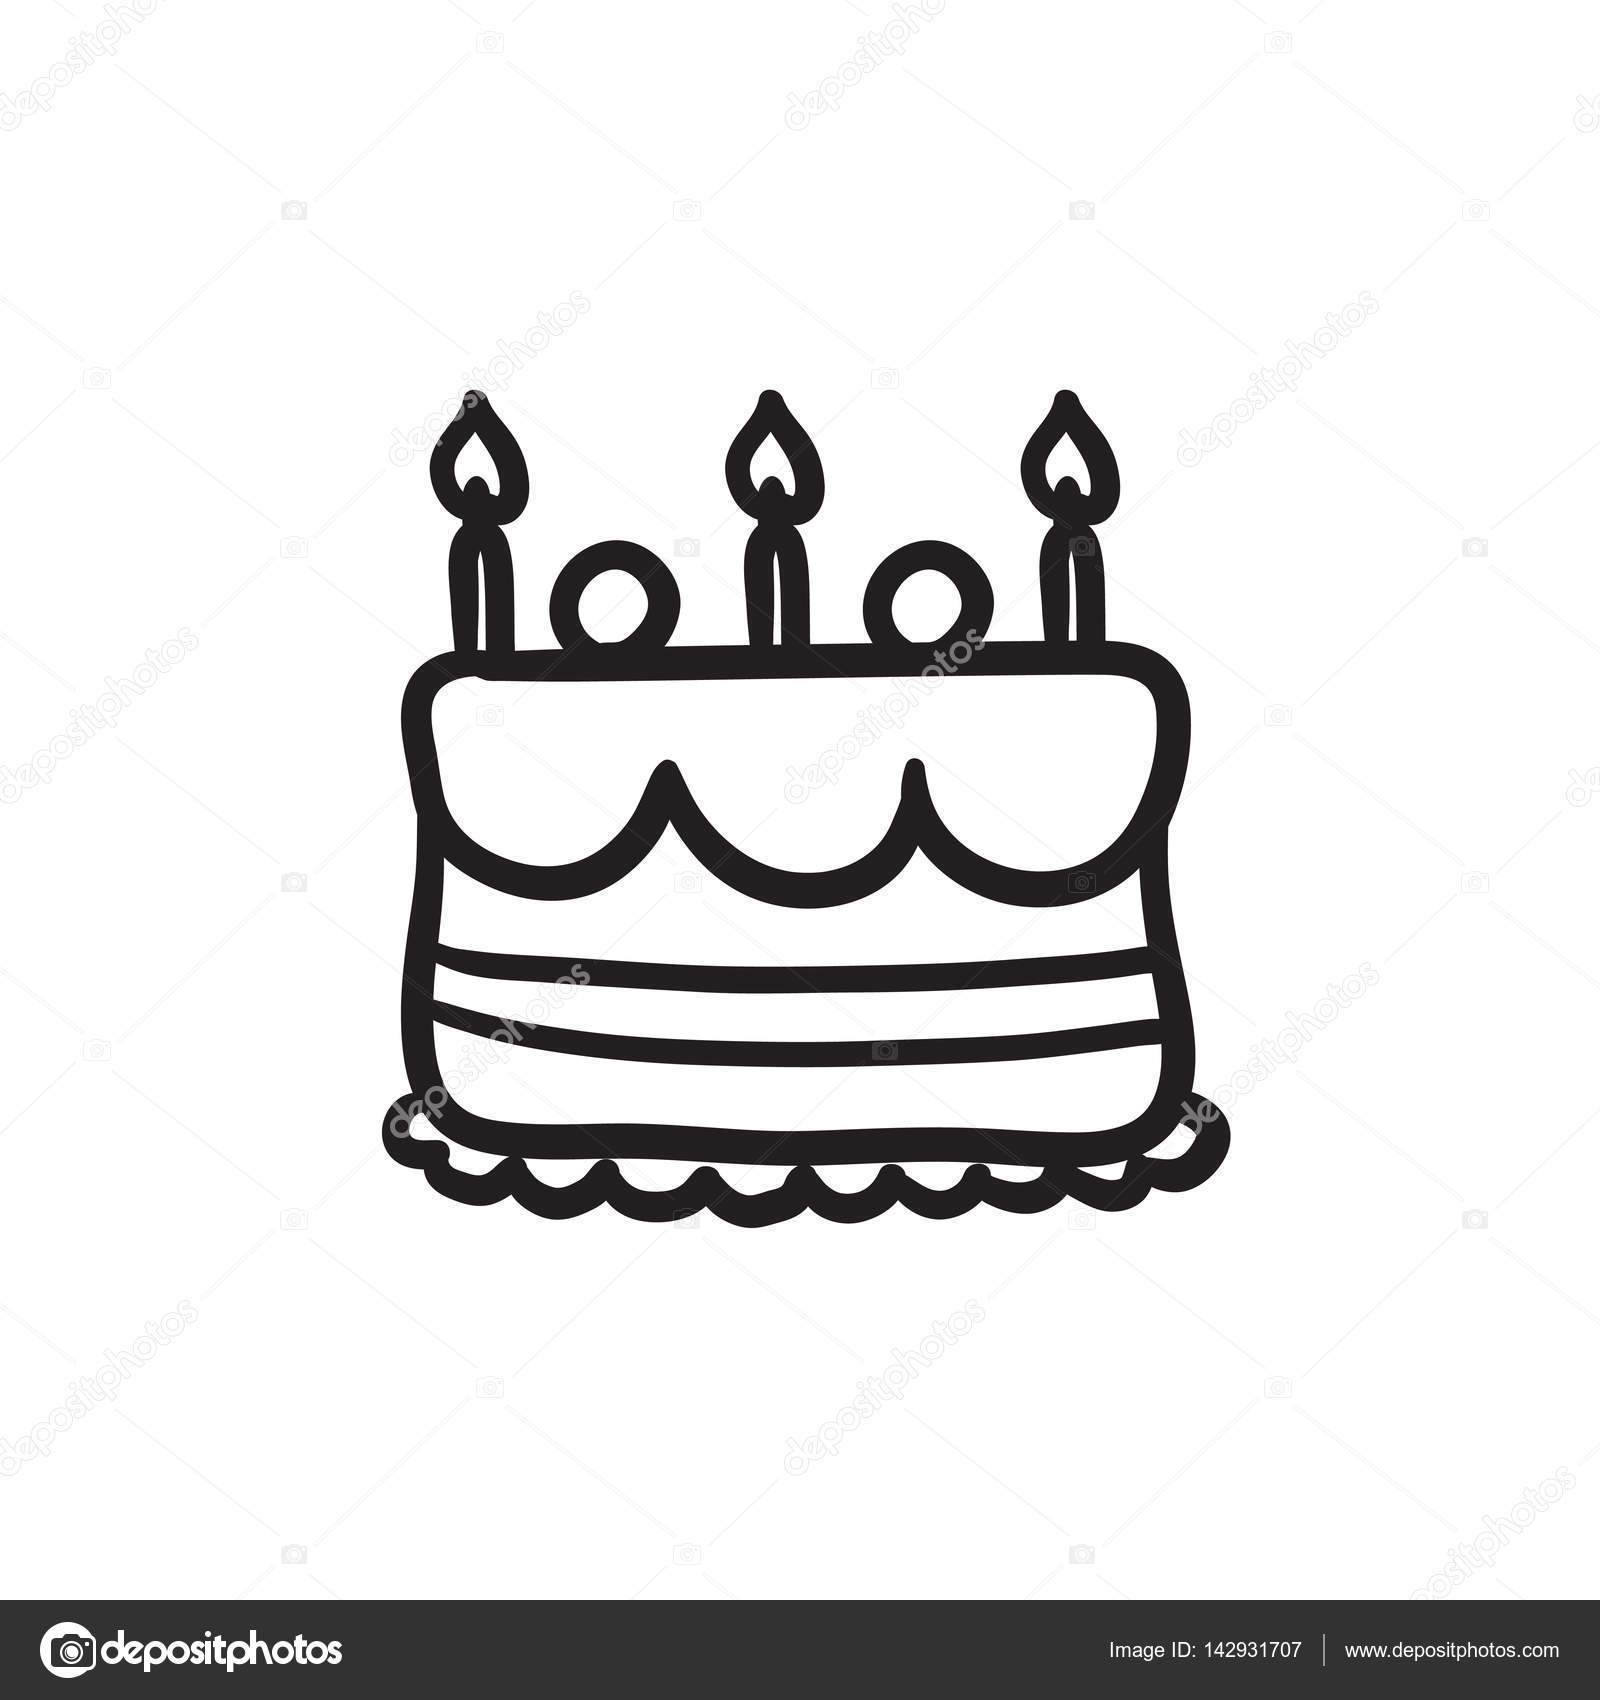 Birthday cake with candles sketch icon Stock Vector rastudio